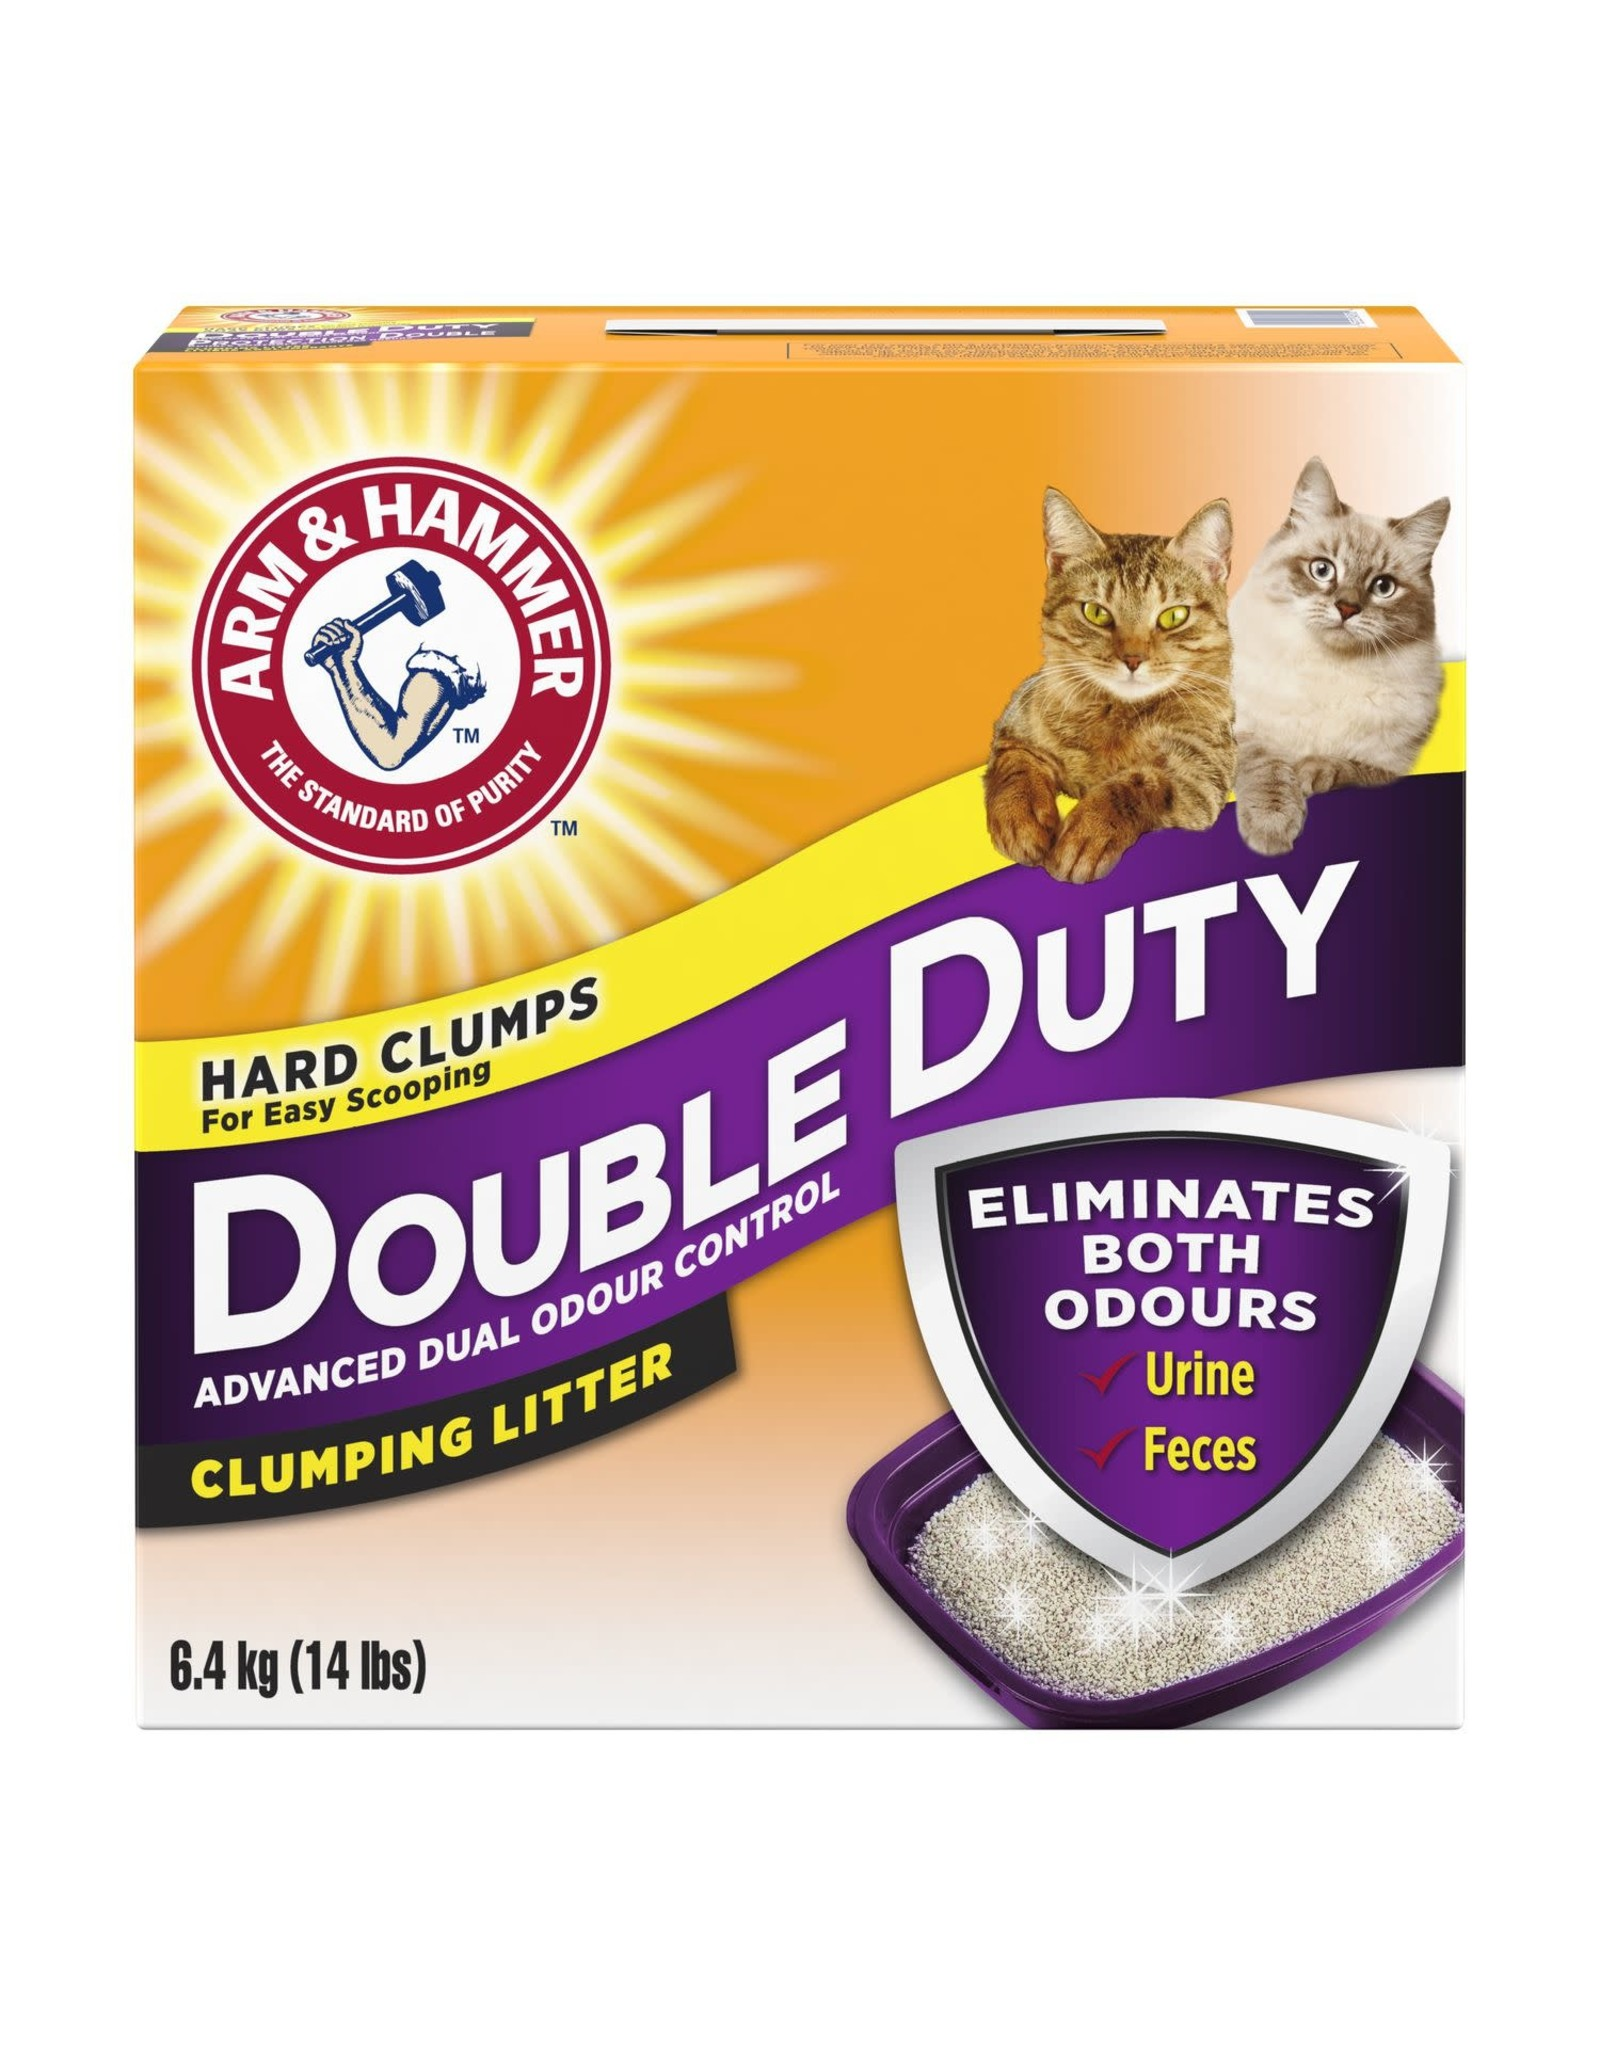 A&H Double Duty Clumping Litter 6.4KG